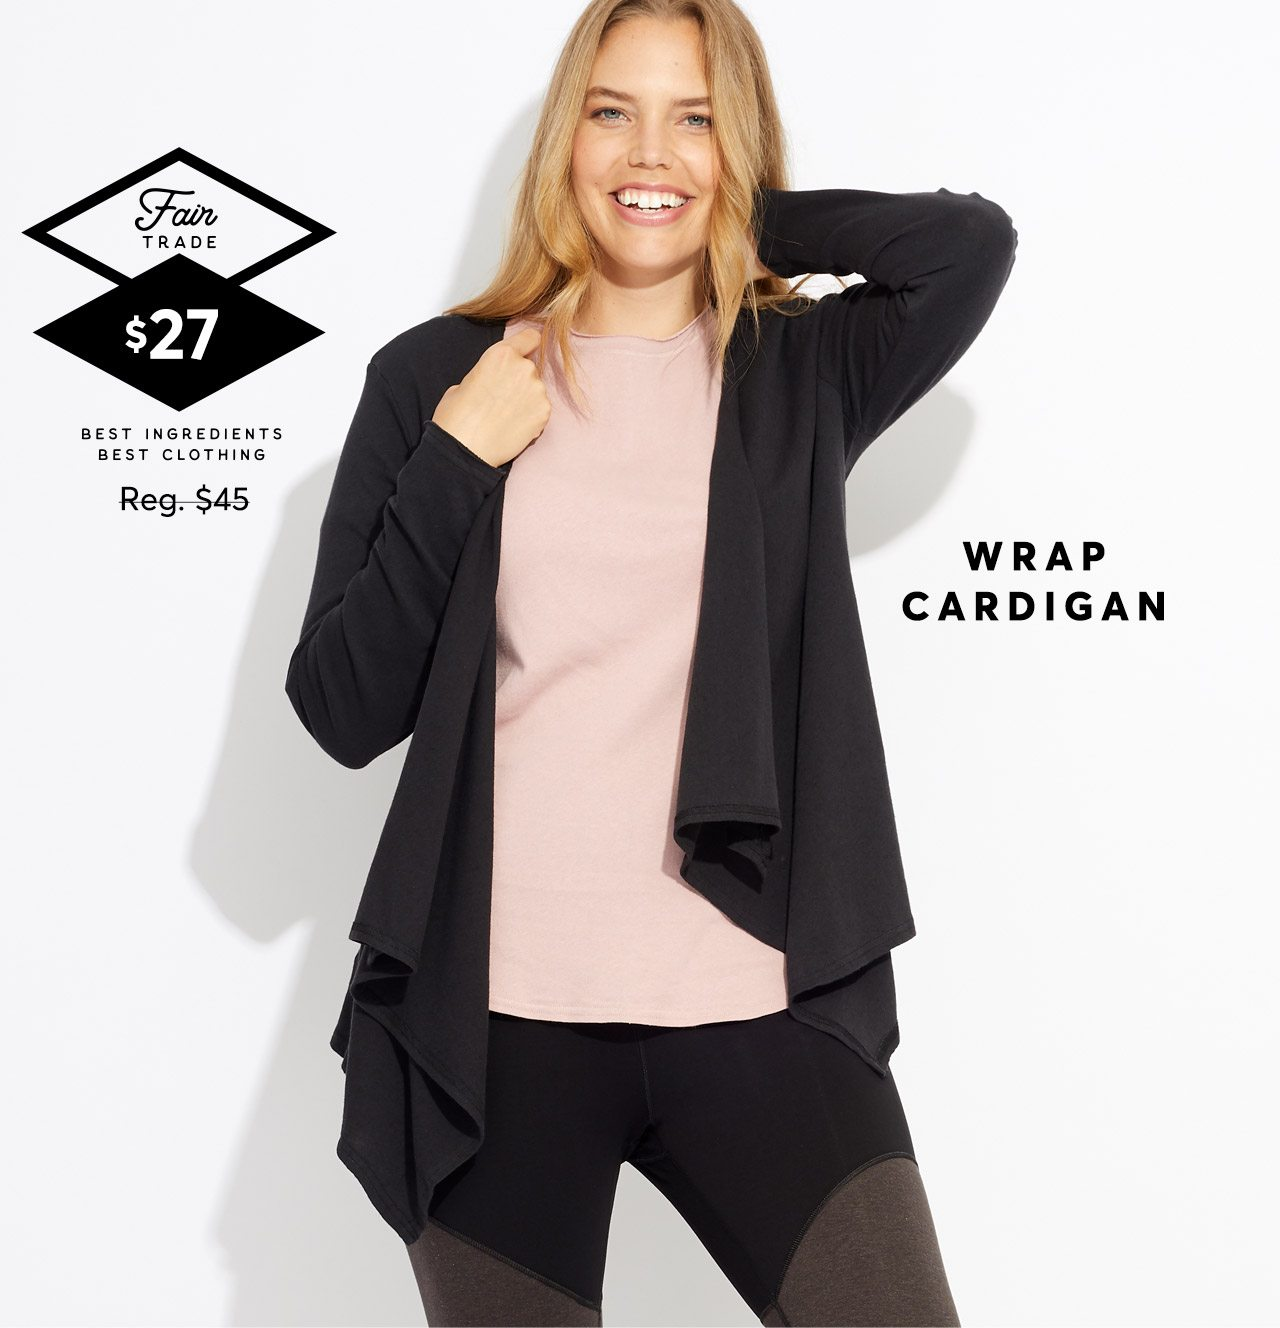 Wrap Cardigan, regular $45, now $27